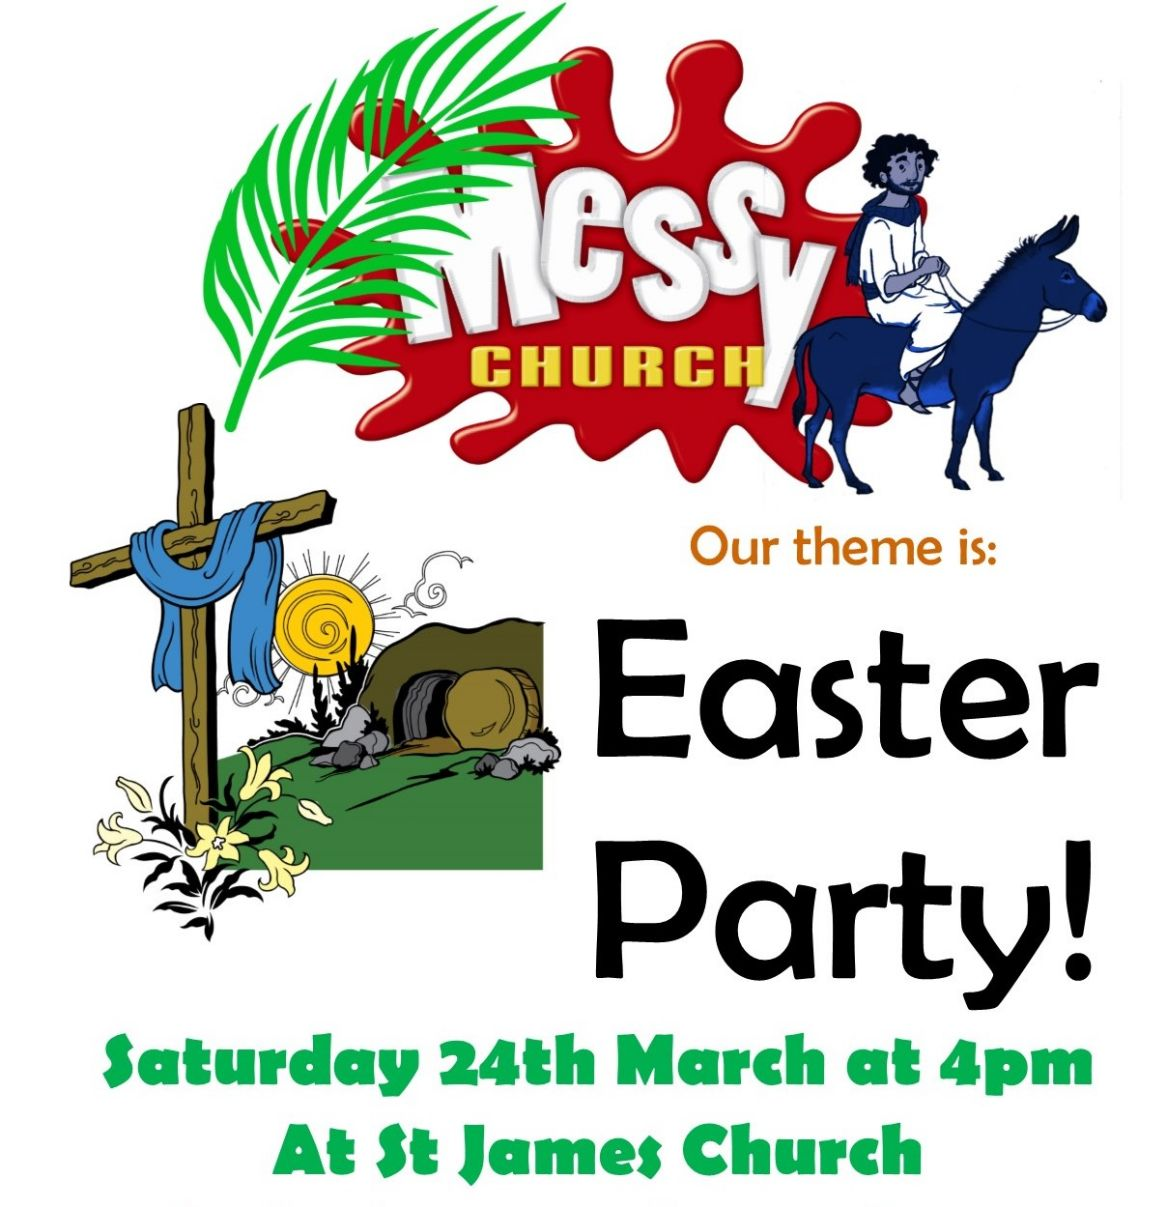 Messy Church Easter Party: Sat 24th March at 4pm